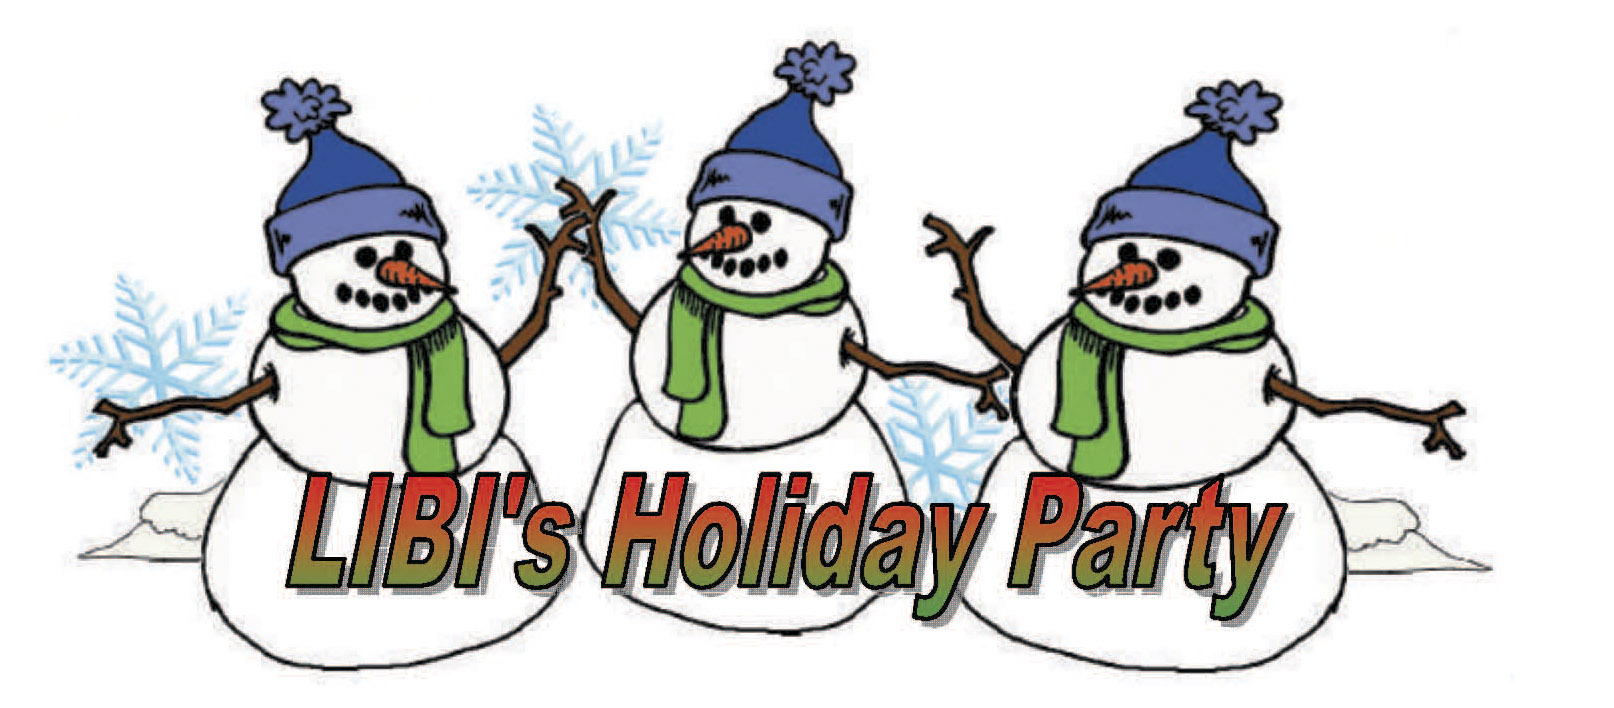 Clip Art Holiday Party Clipart holiday party clipart kid free cliparts that you can download to you